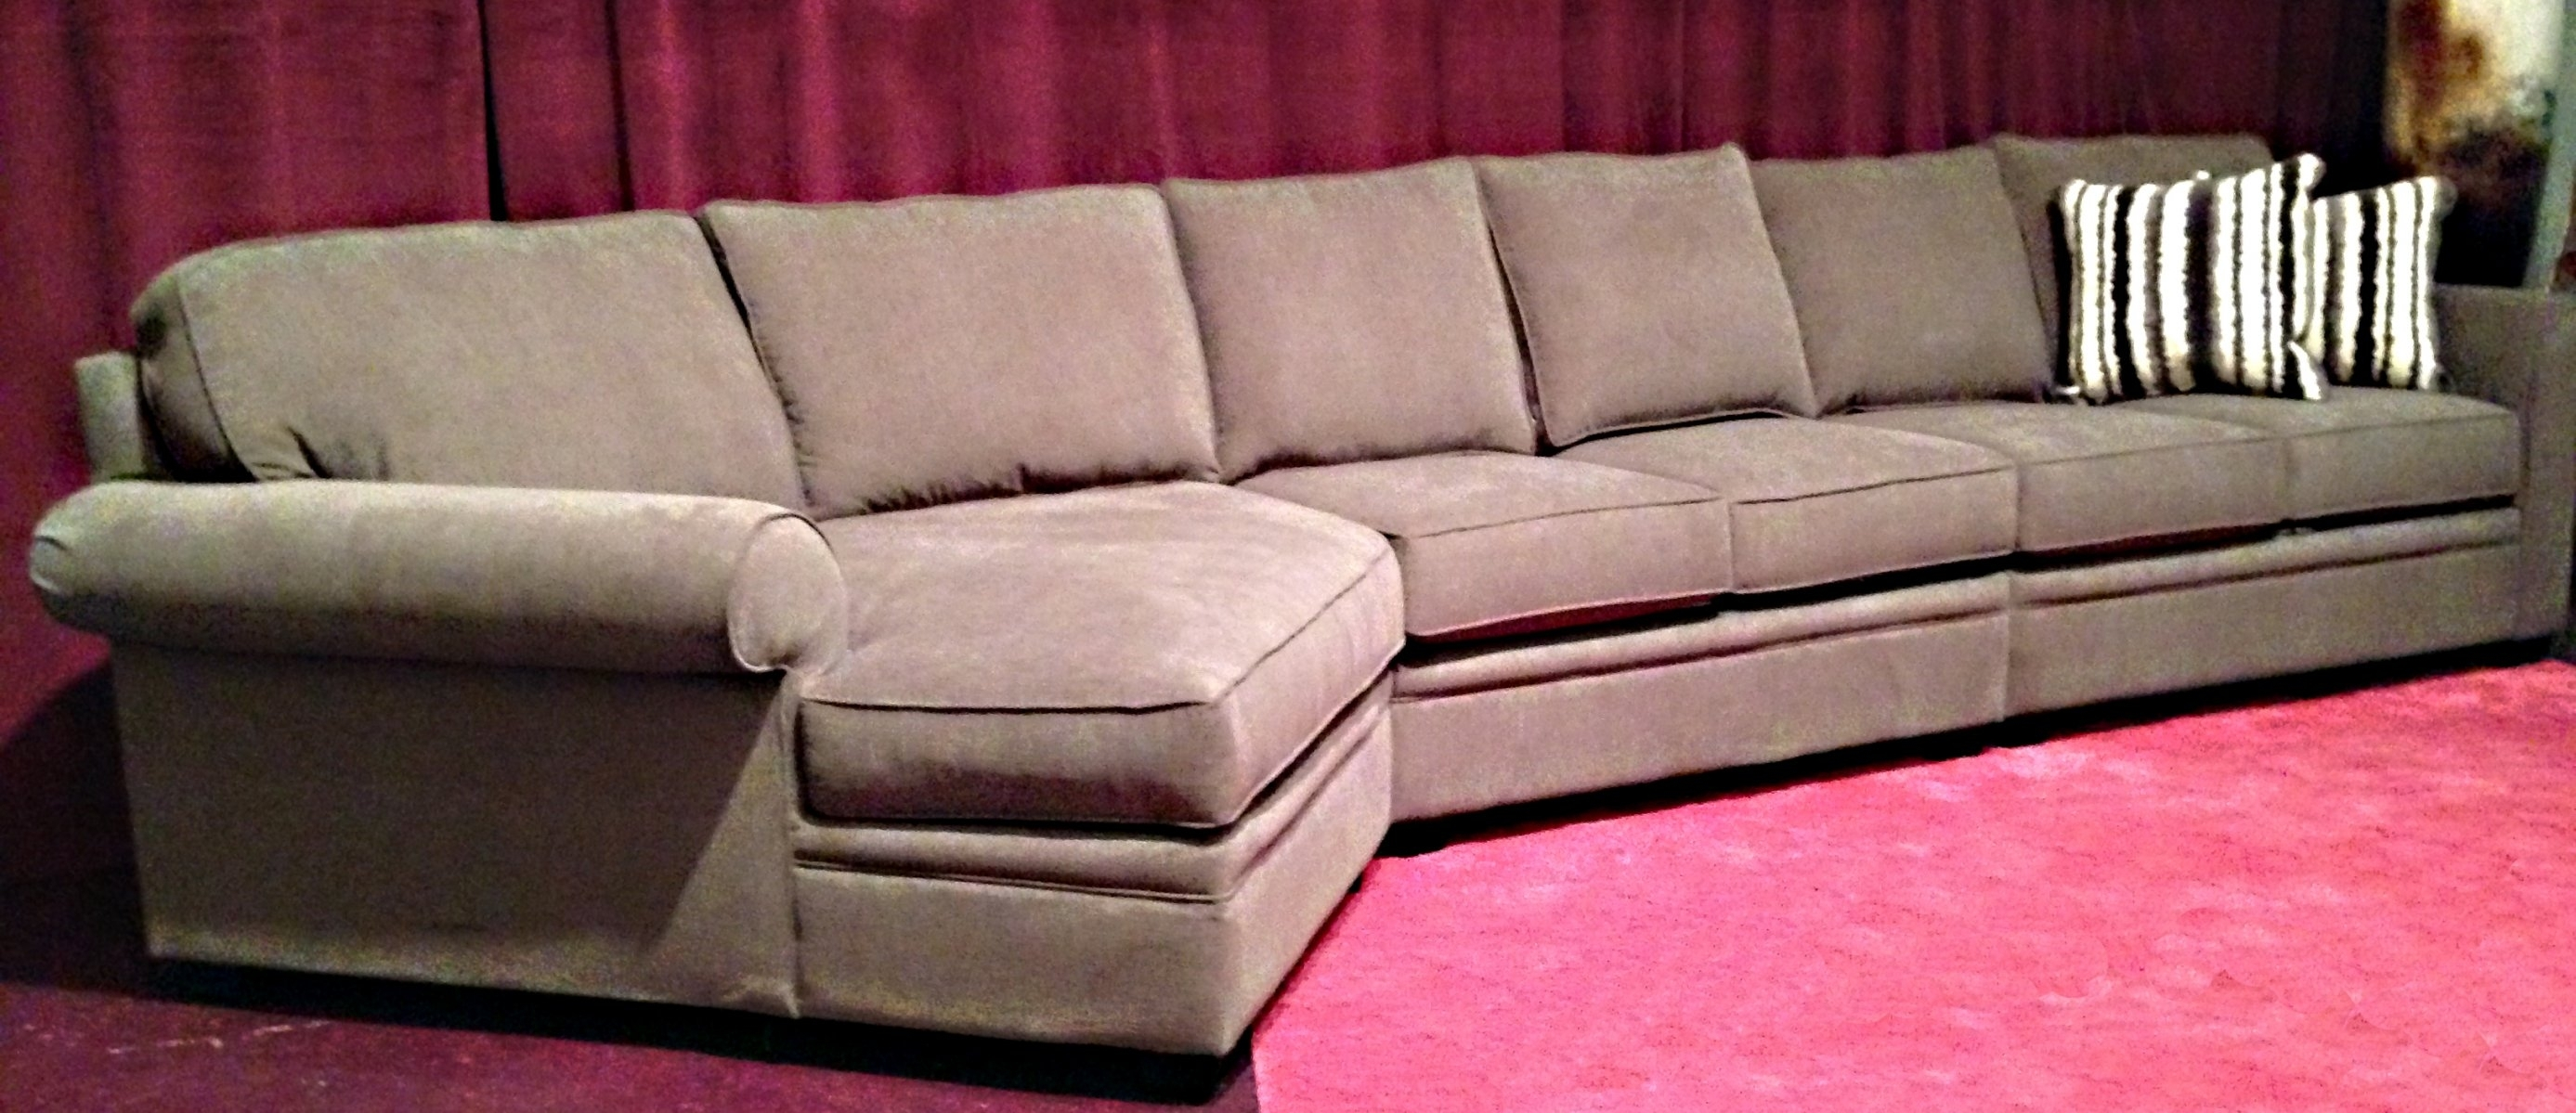 Extra Long Reclining Sofa Throughout Long Chaise Sofas (Photo 8 of 10)